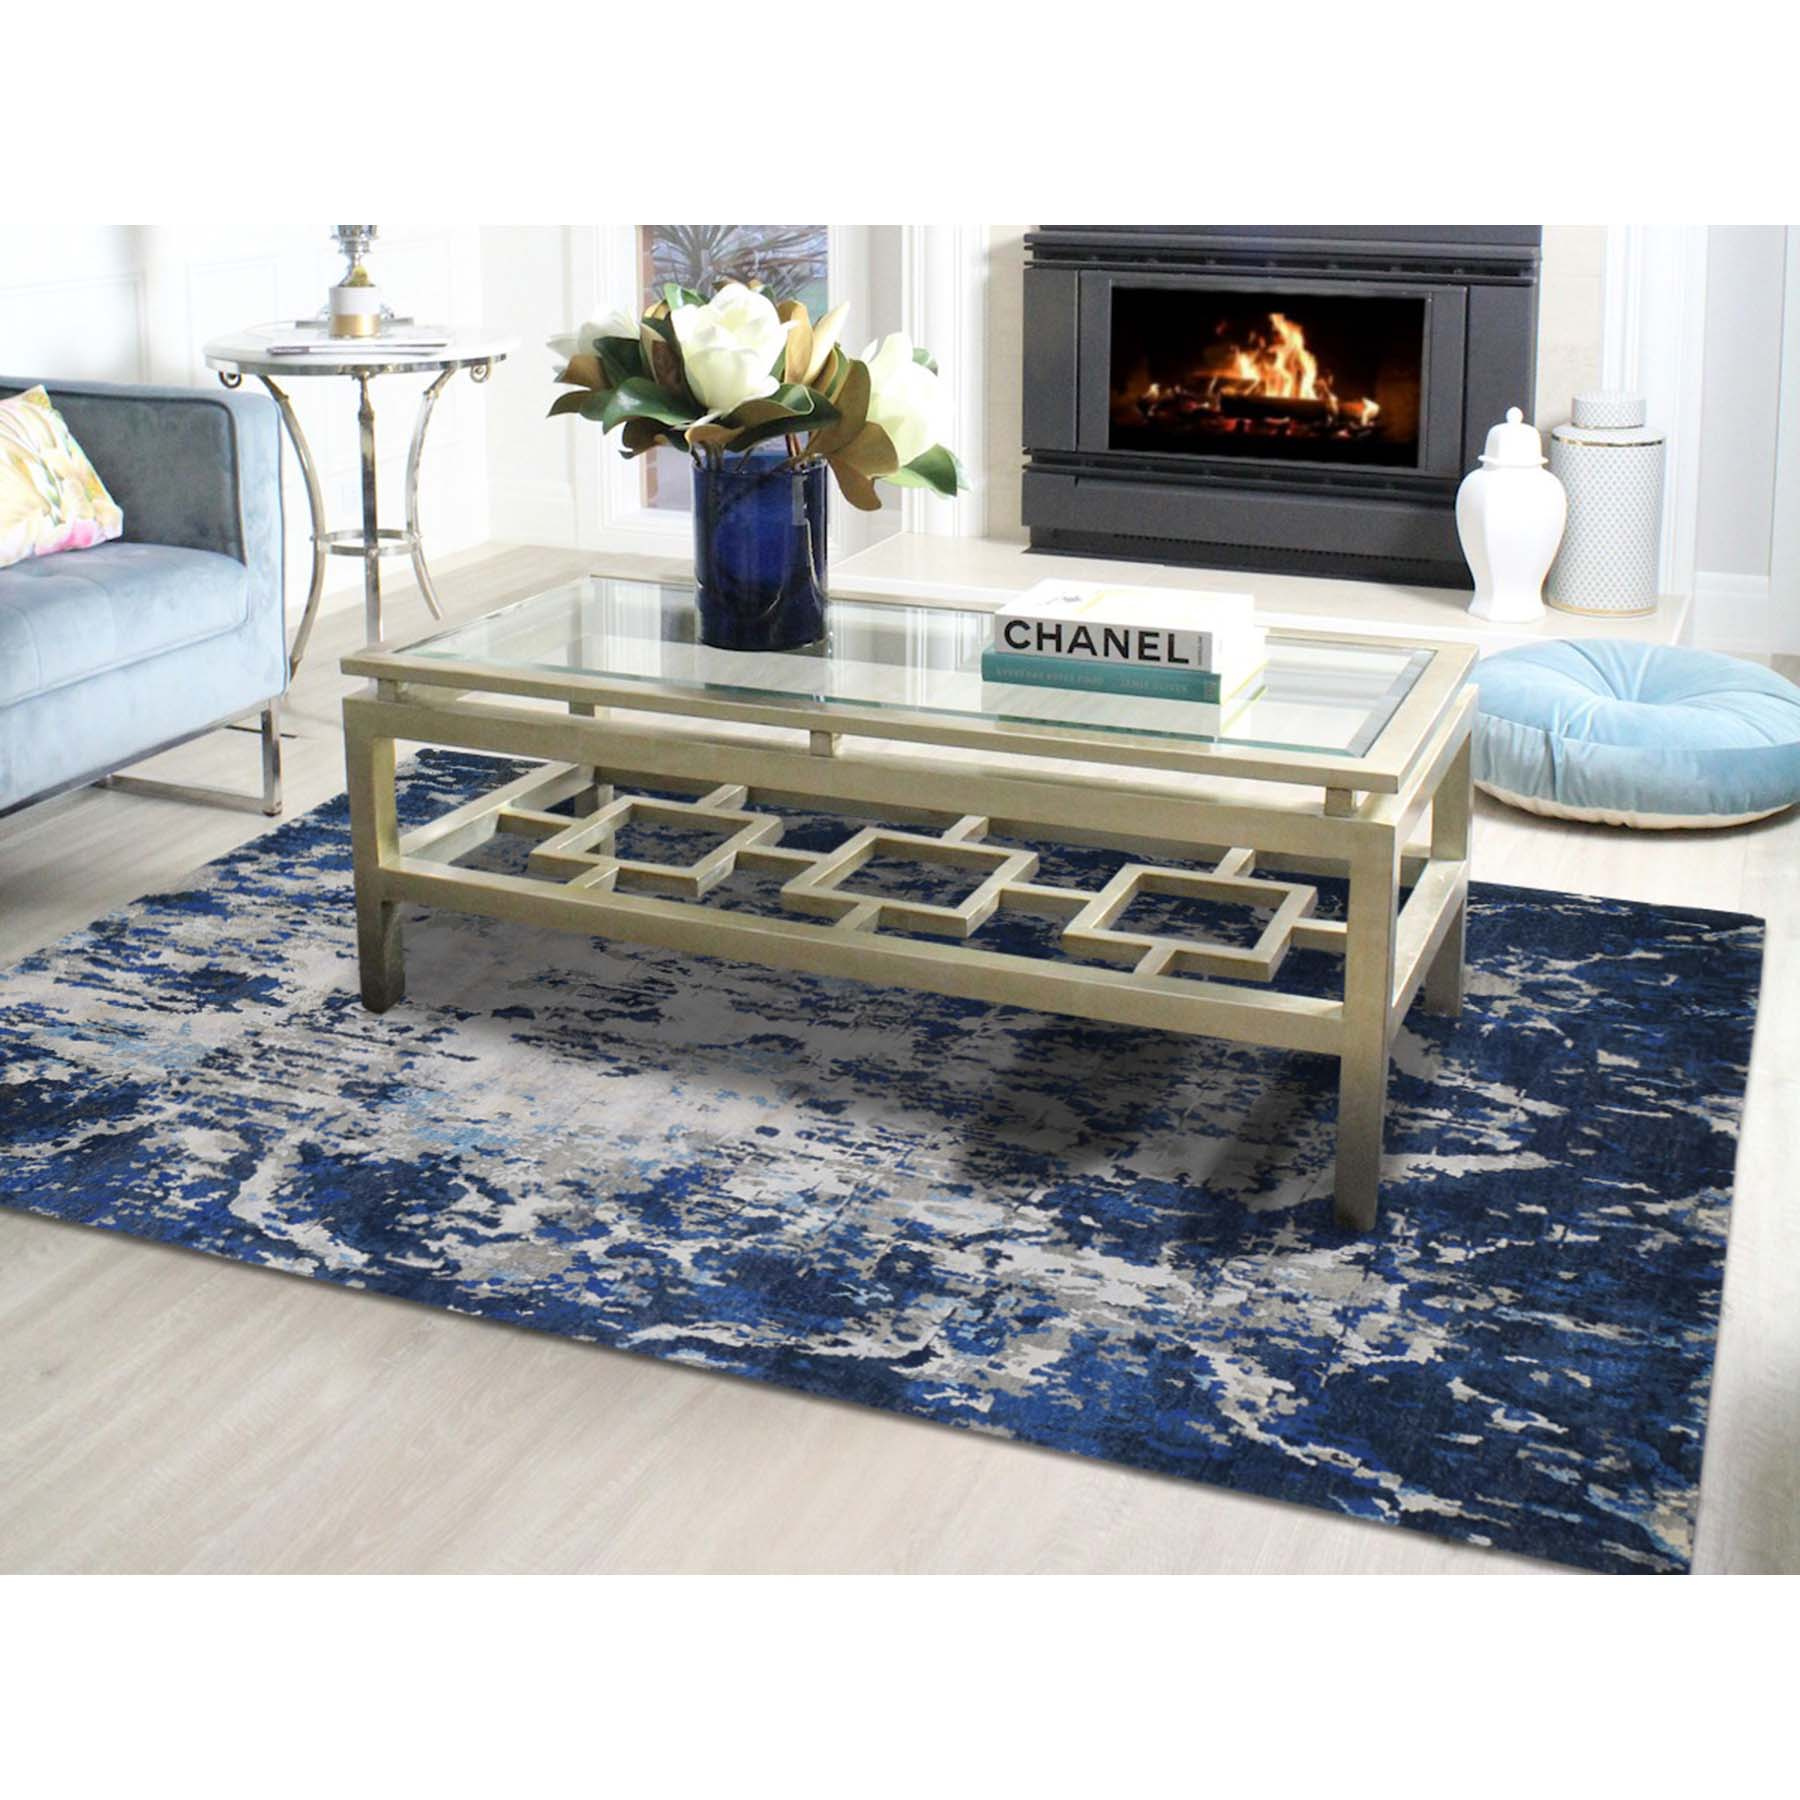 6-x9-1  Abstract Design Hi-Low Pile Wool And Silk Hand-Knotted Modern Rug